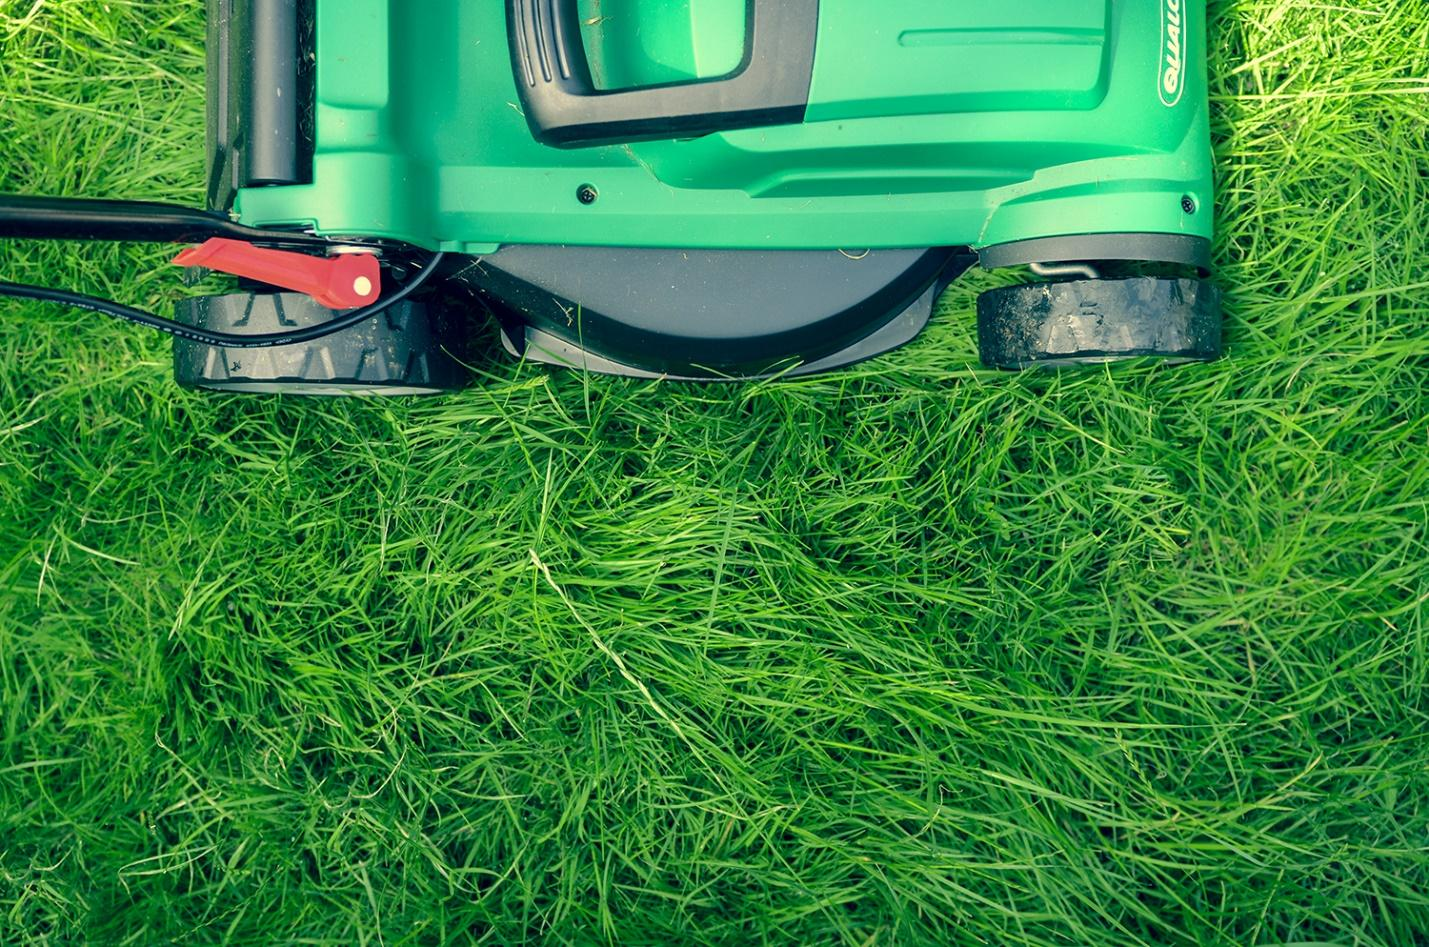 Sharpening your mower blades is important for organic lawn care